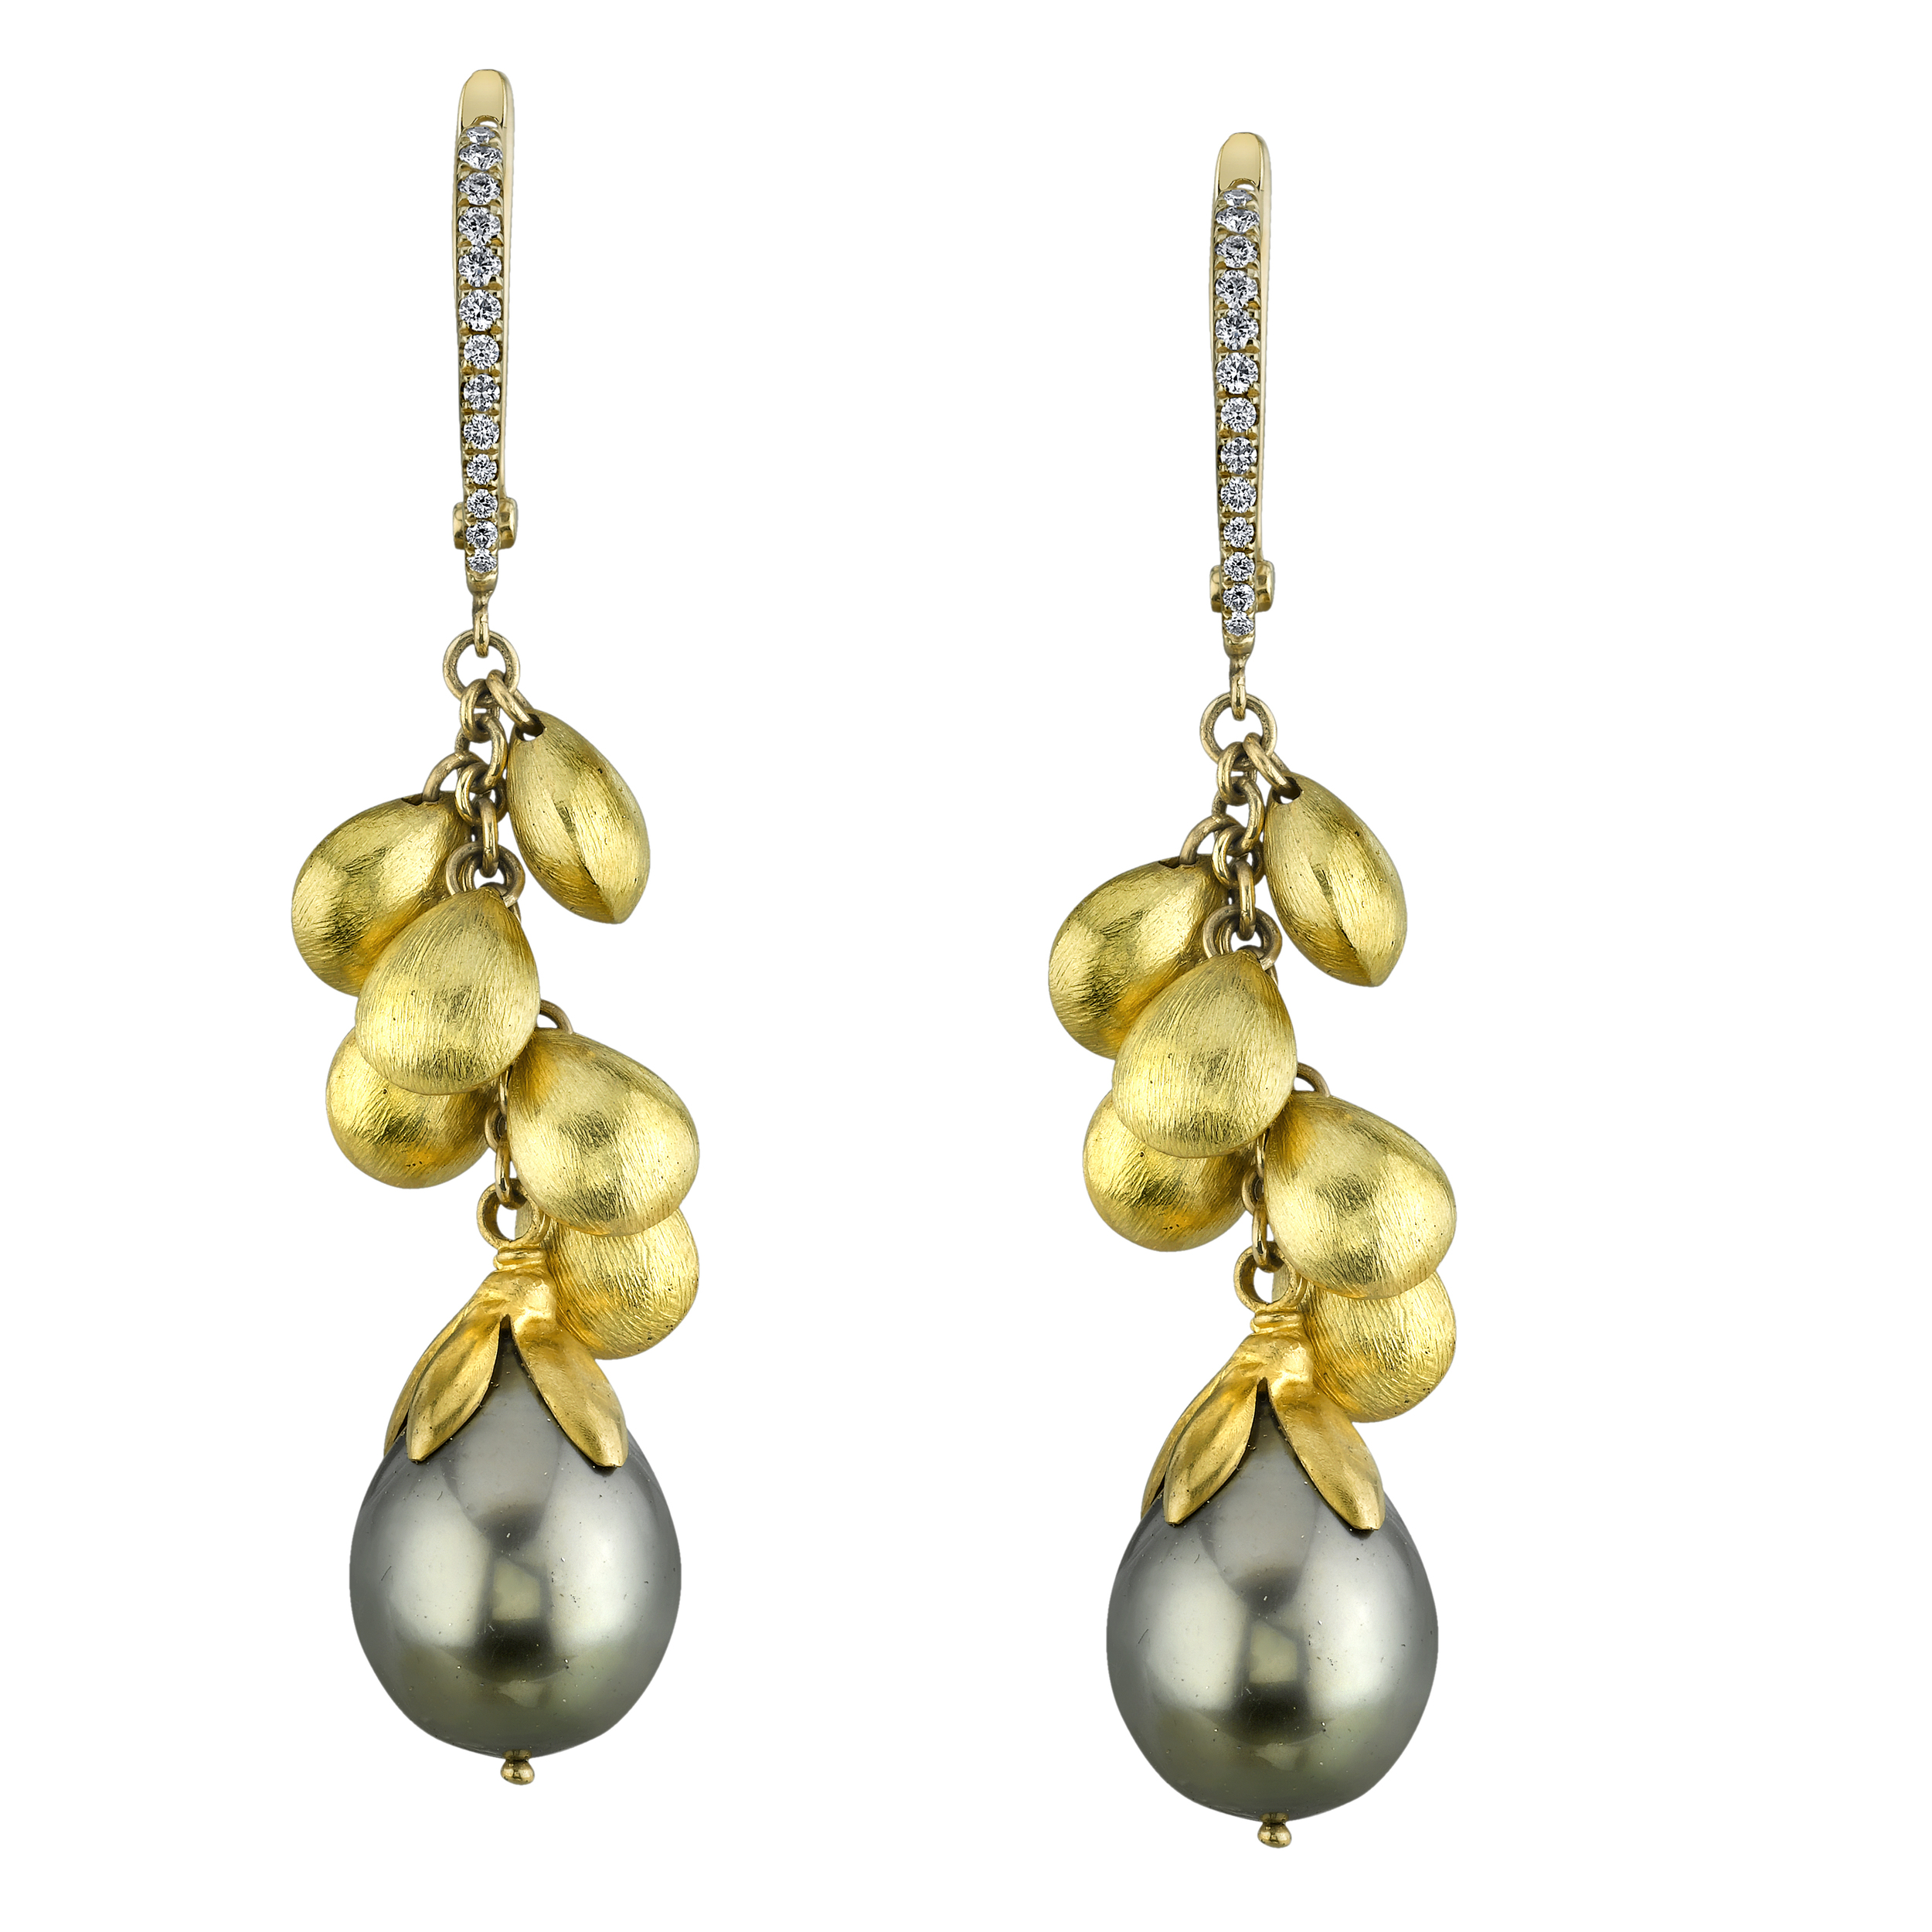 20 Karat Yellow Gold Black Tahitian Pearl Earrings, accented with Diamonds